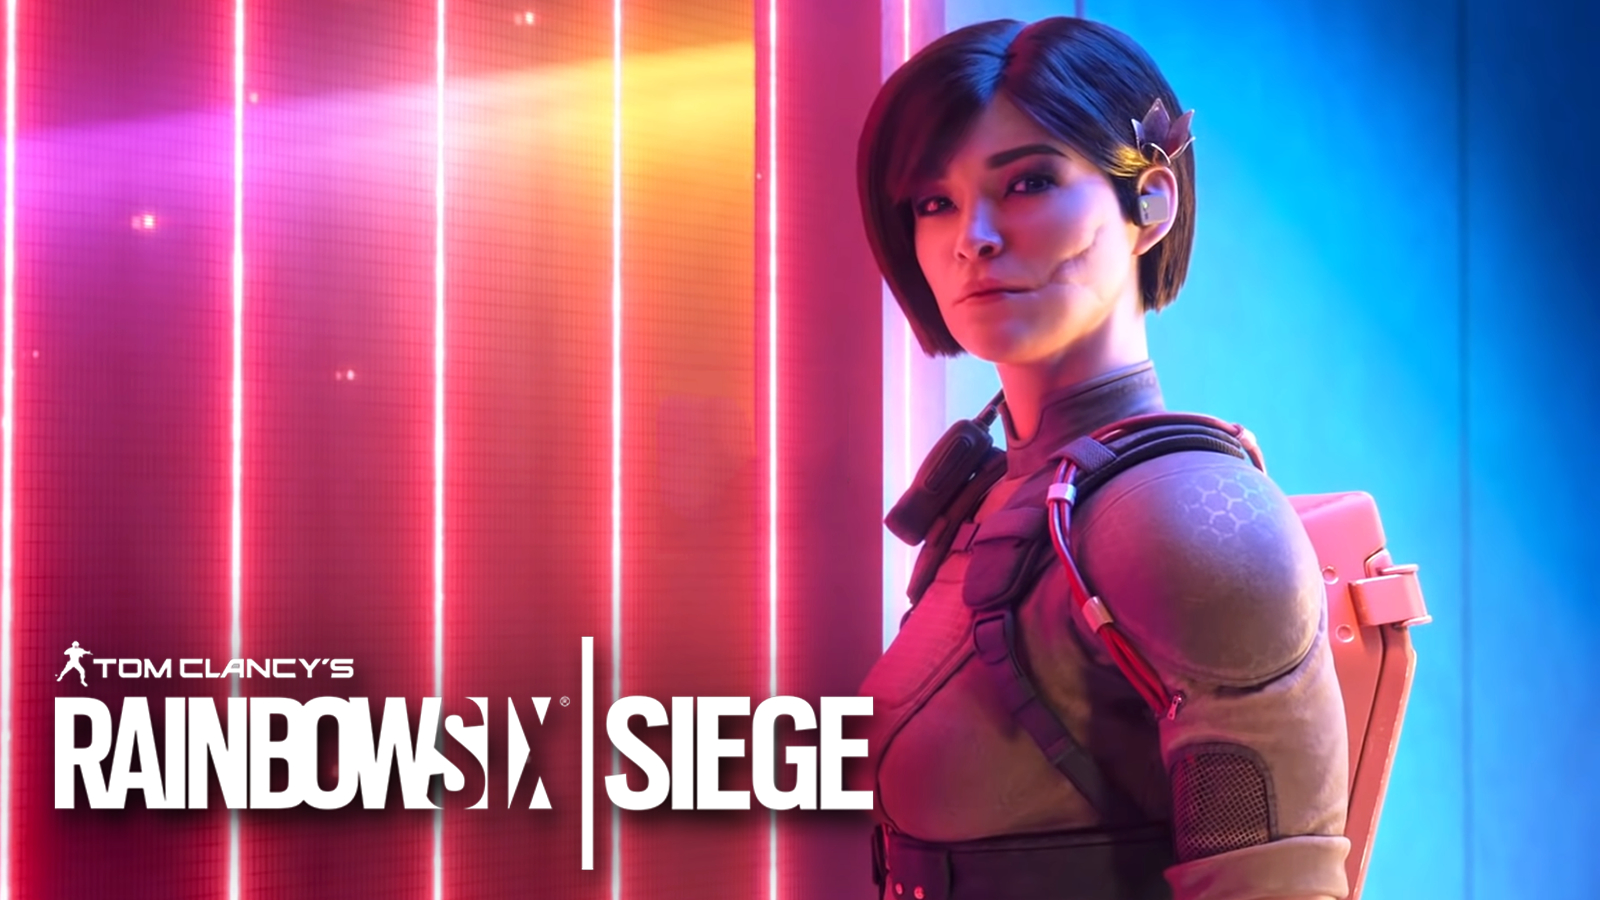 New Rainbow Six Siege operator Aruni stands in front of laser gate.